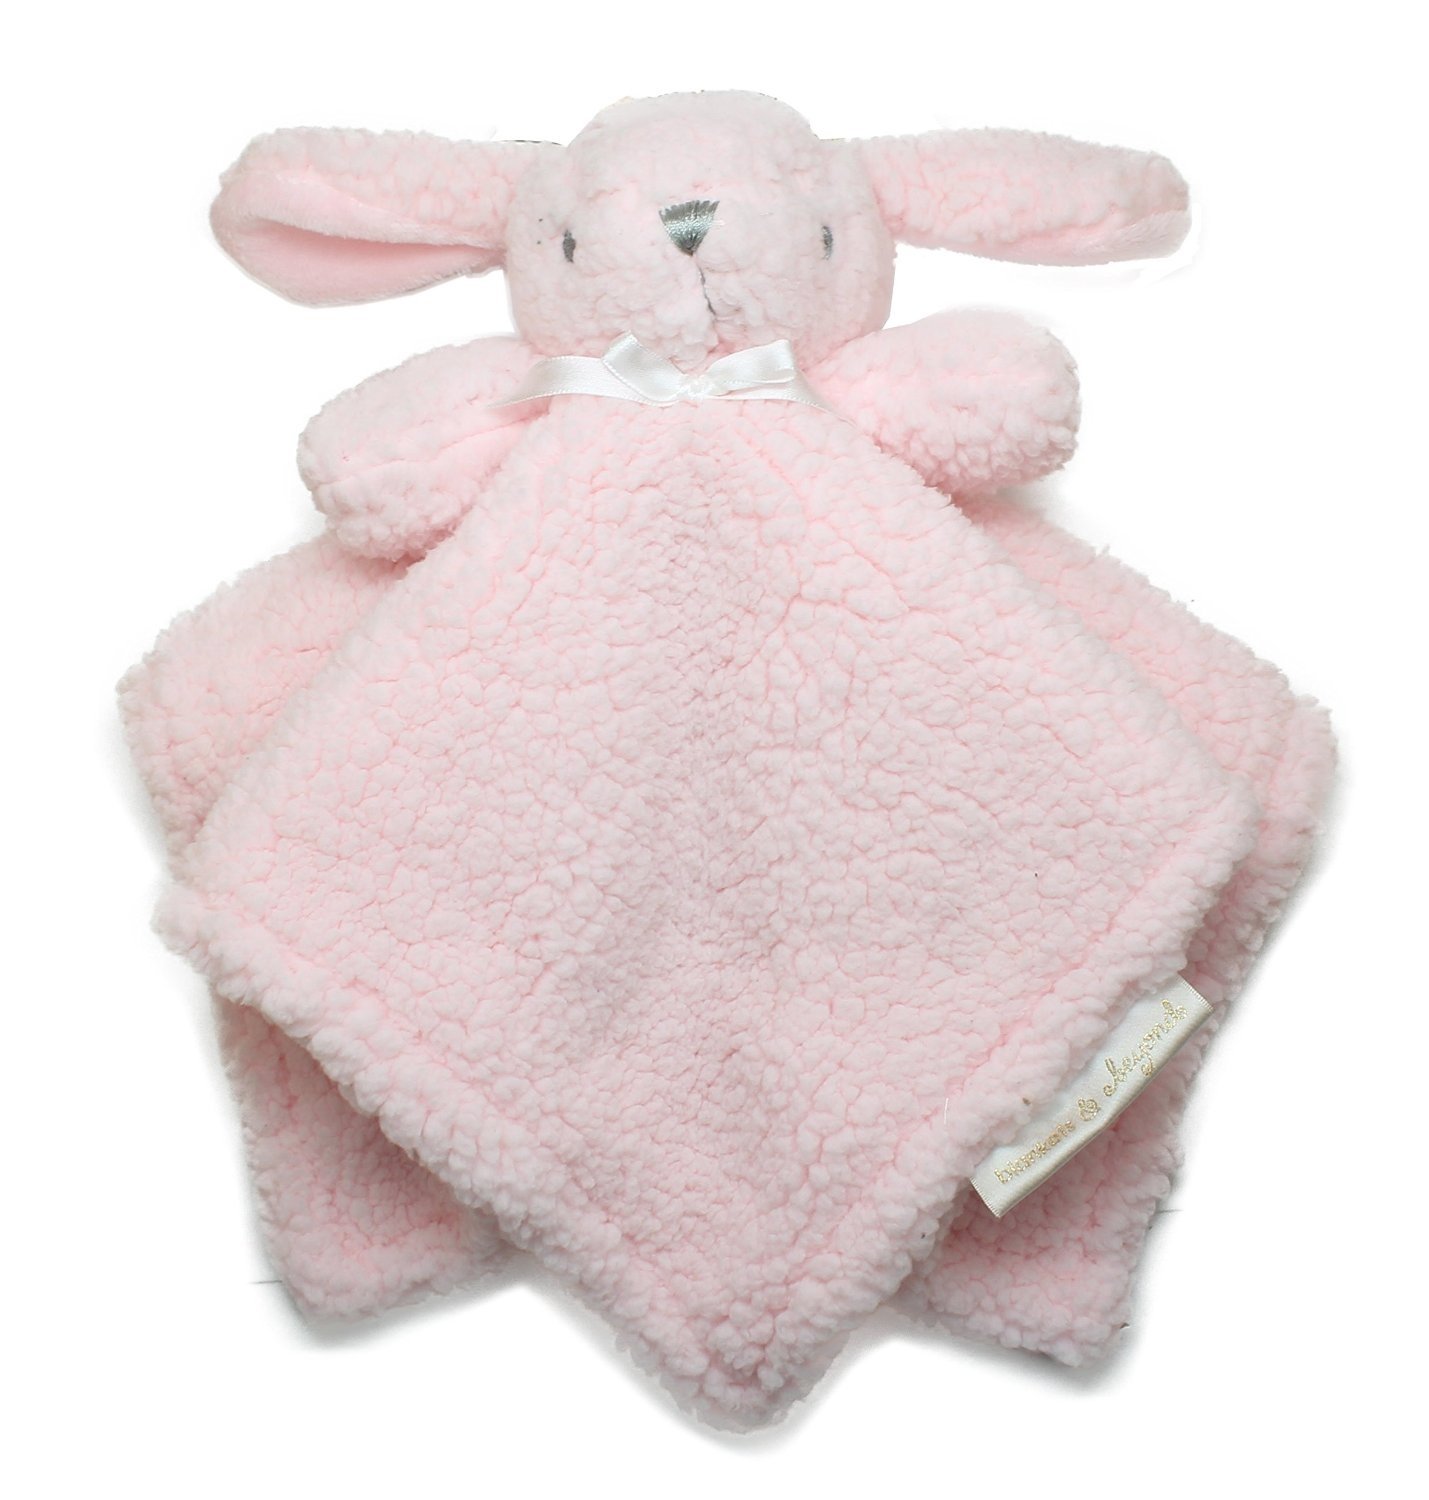 e843543318 Blankets and Beyond Pink Bunny Baby Security Blanket Plush by ...